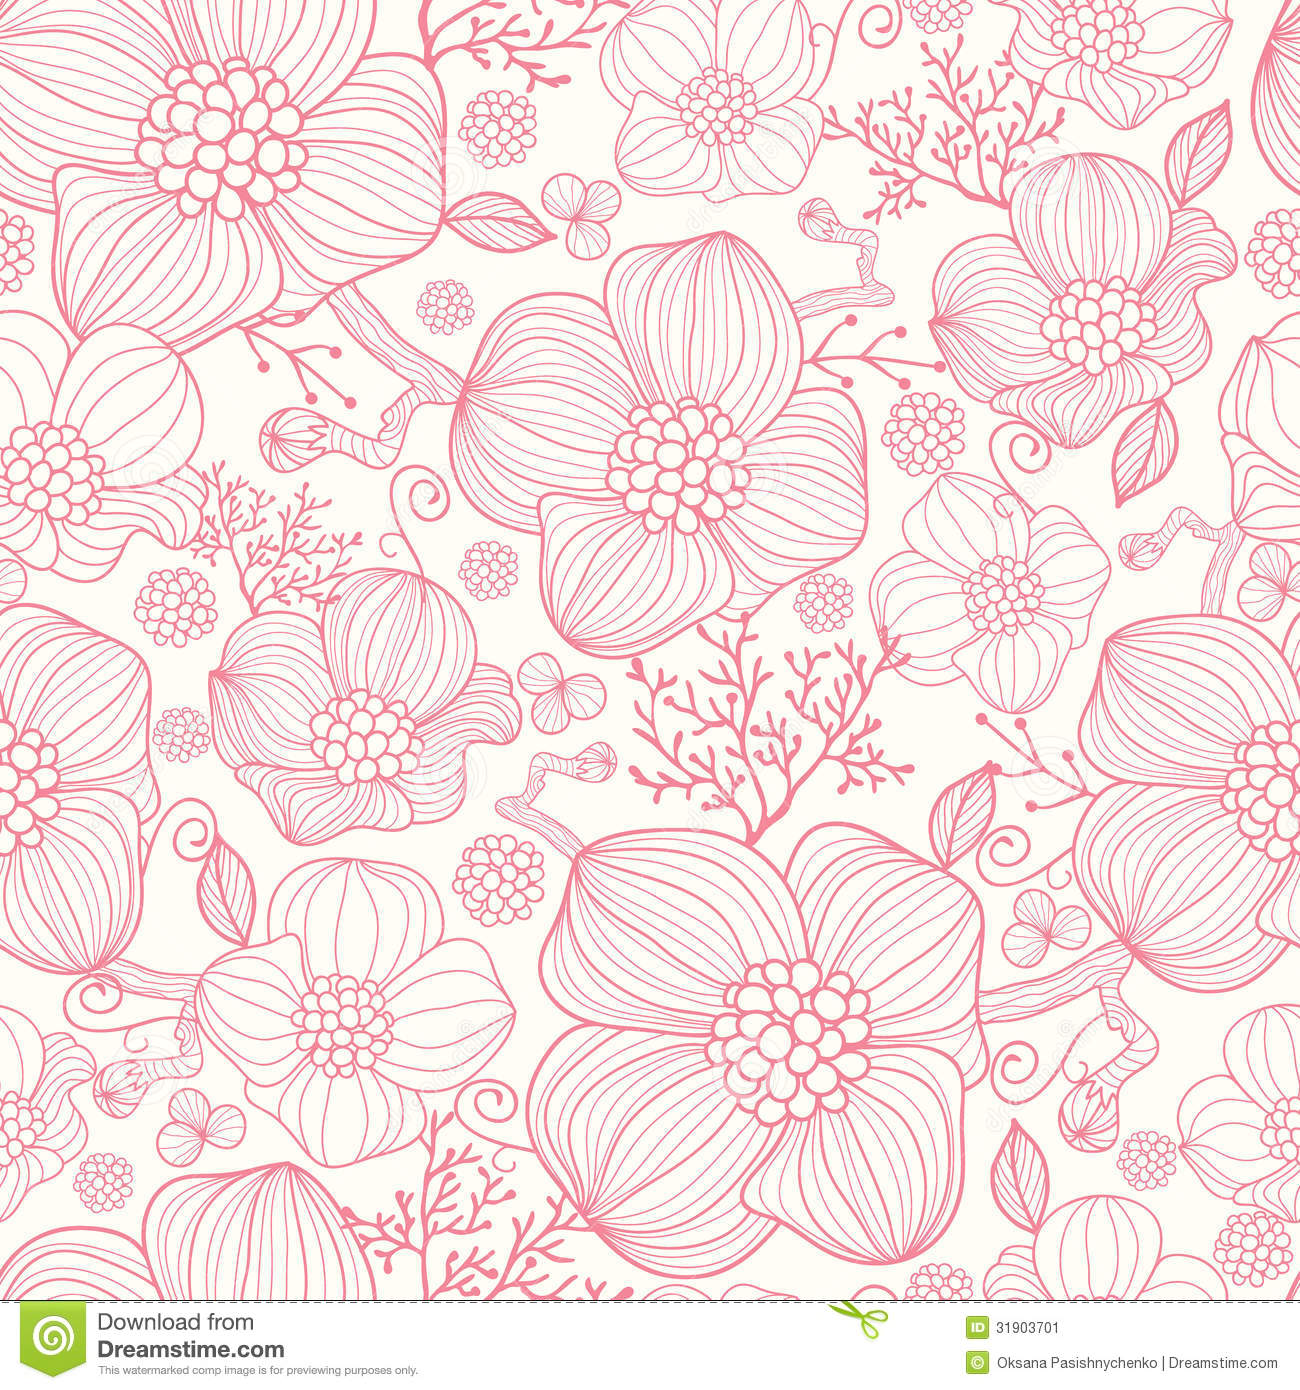 Vector Line Drawing Flower Pattern : Red line art flowers seamless pattern background stock